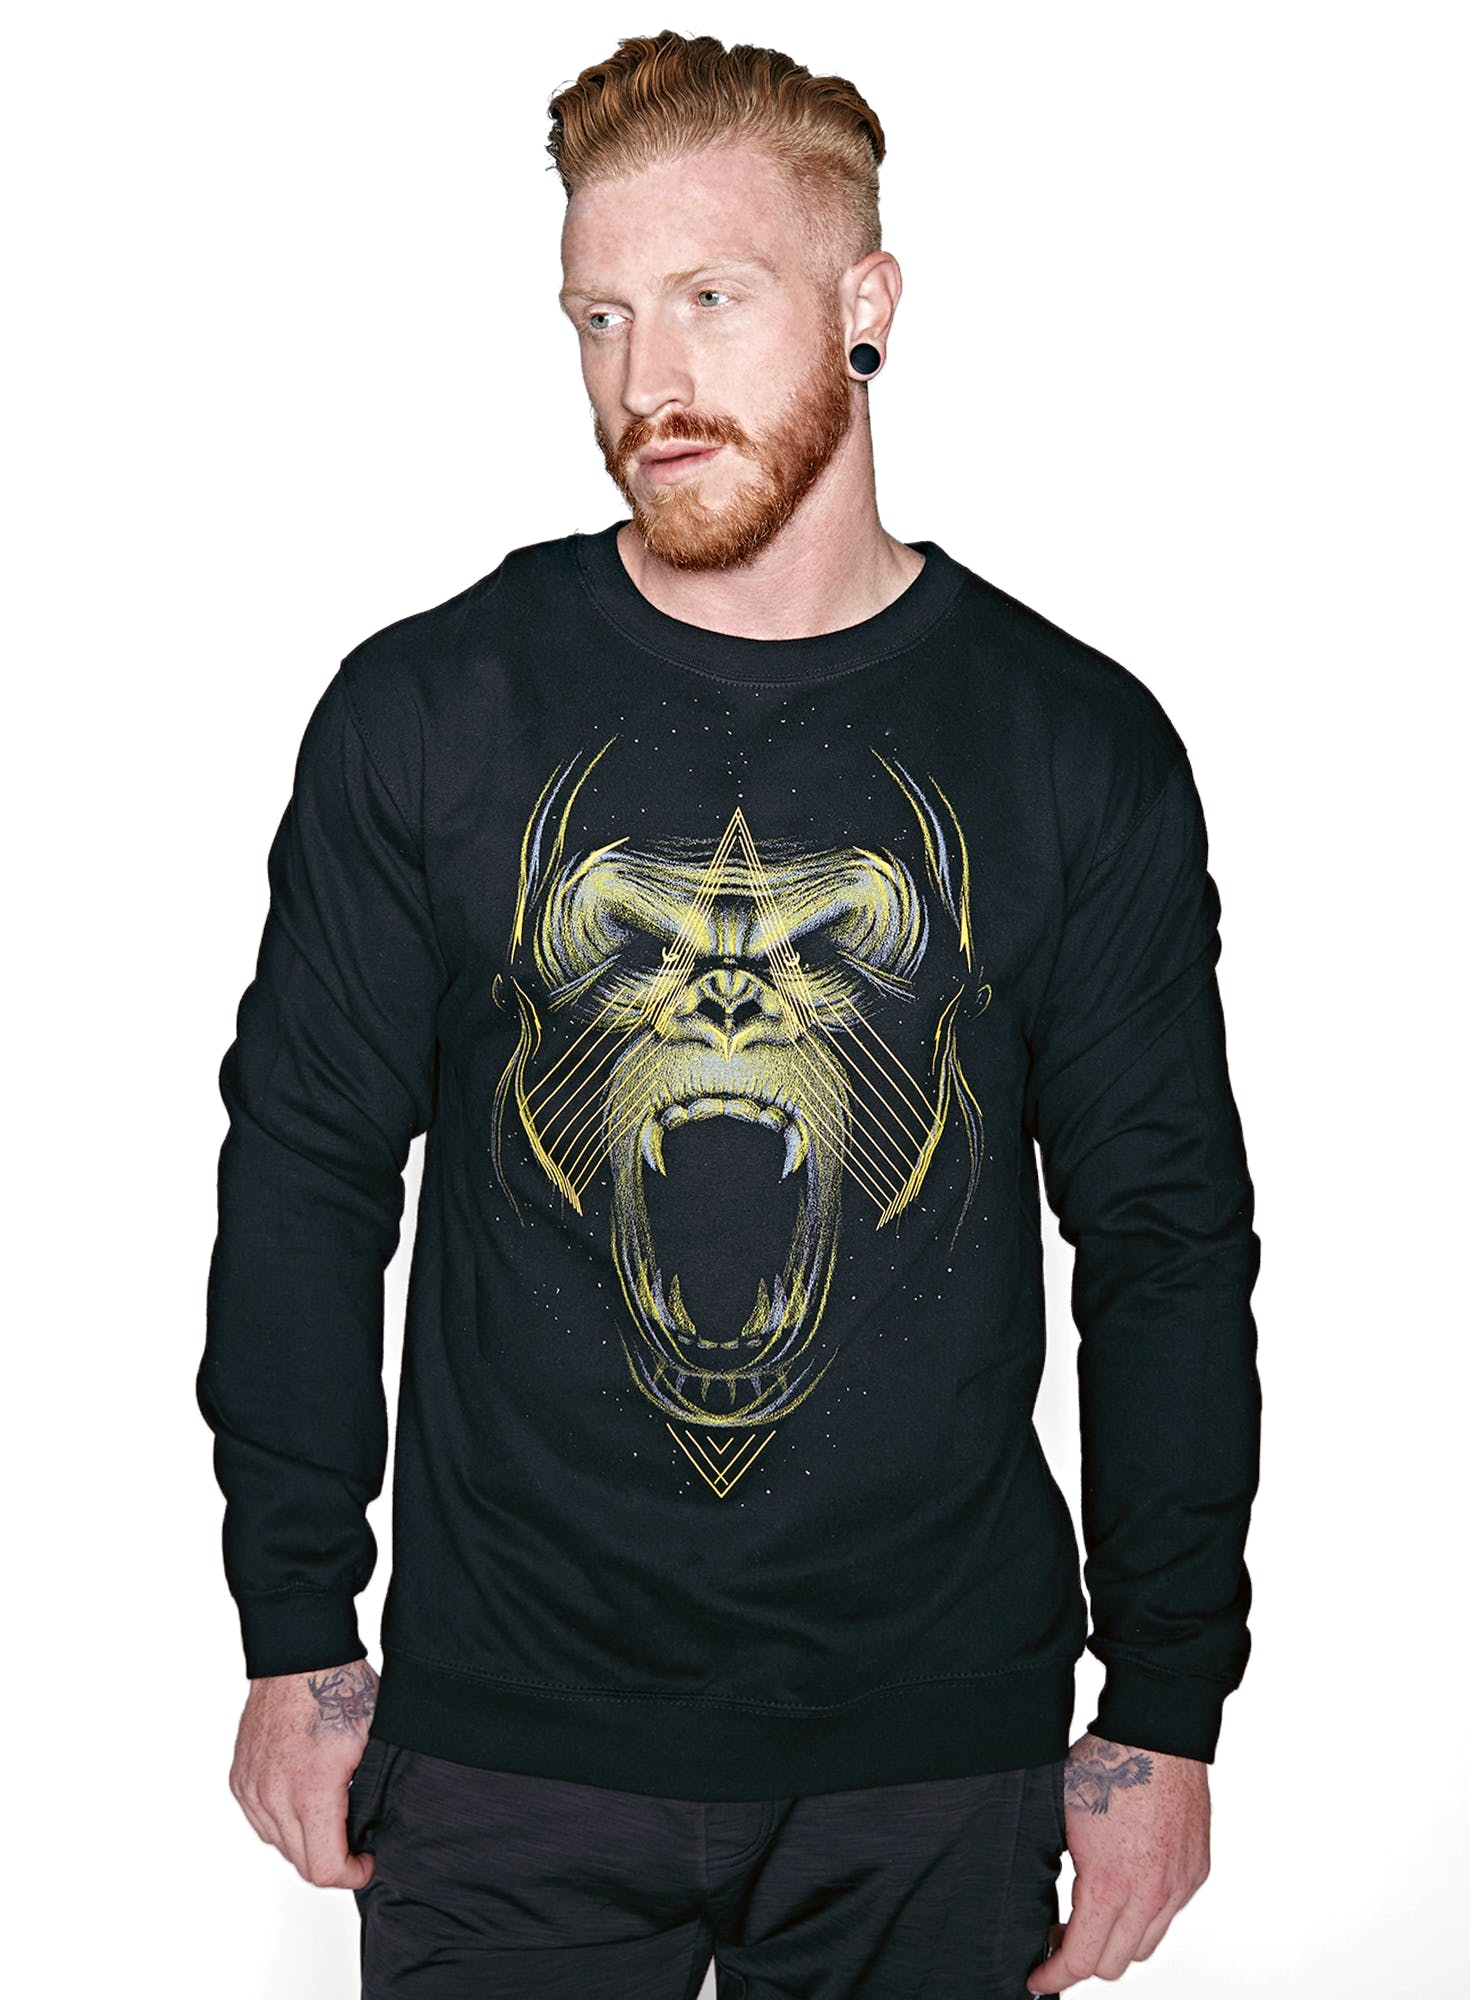 Golden Gorilla Crew Sweatshirt